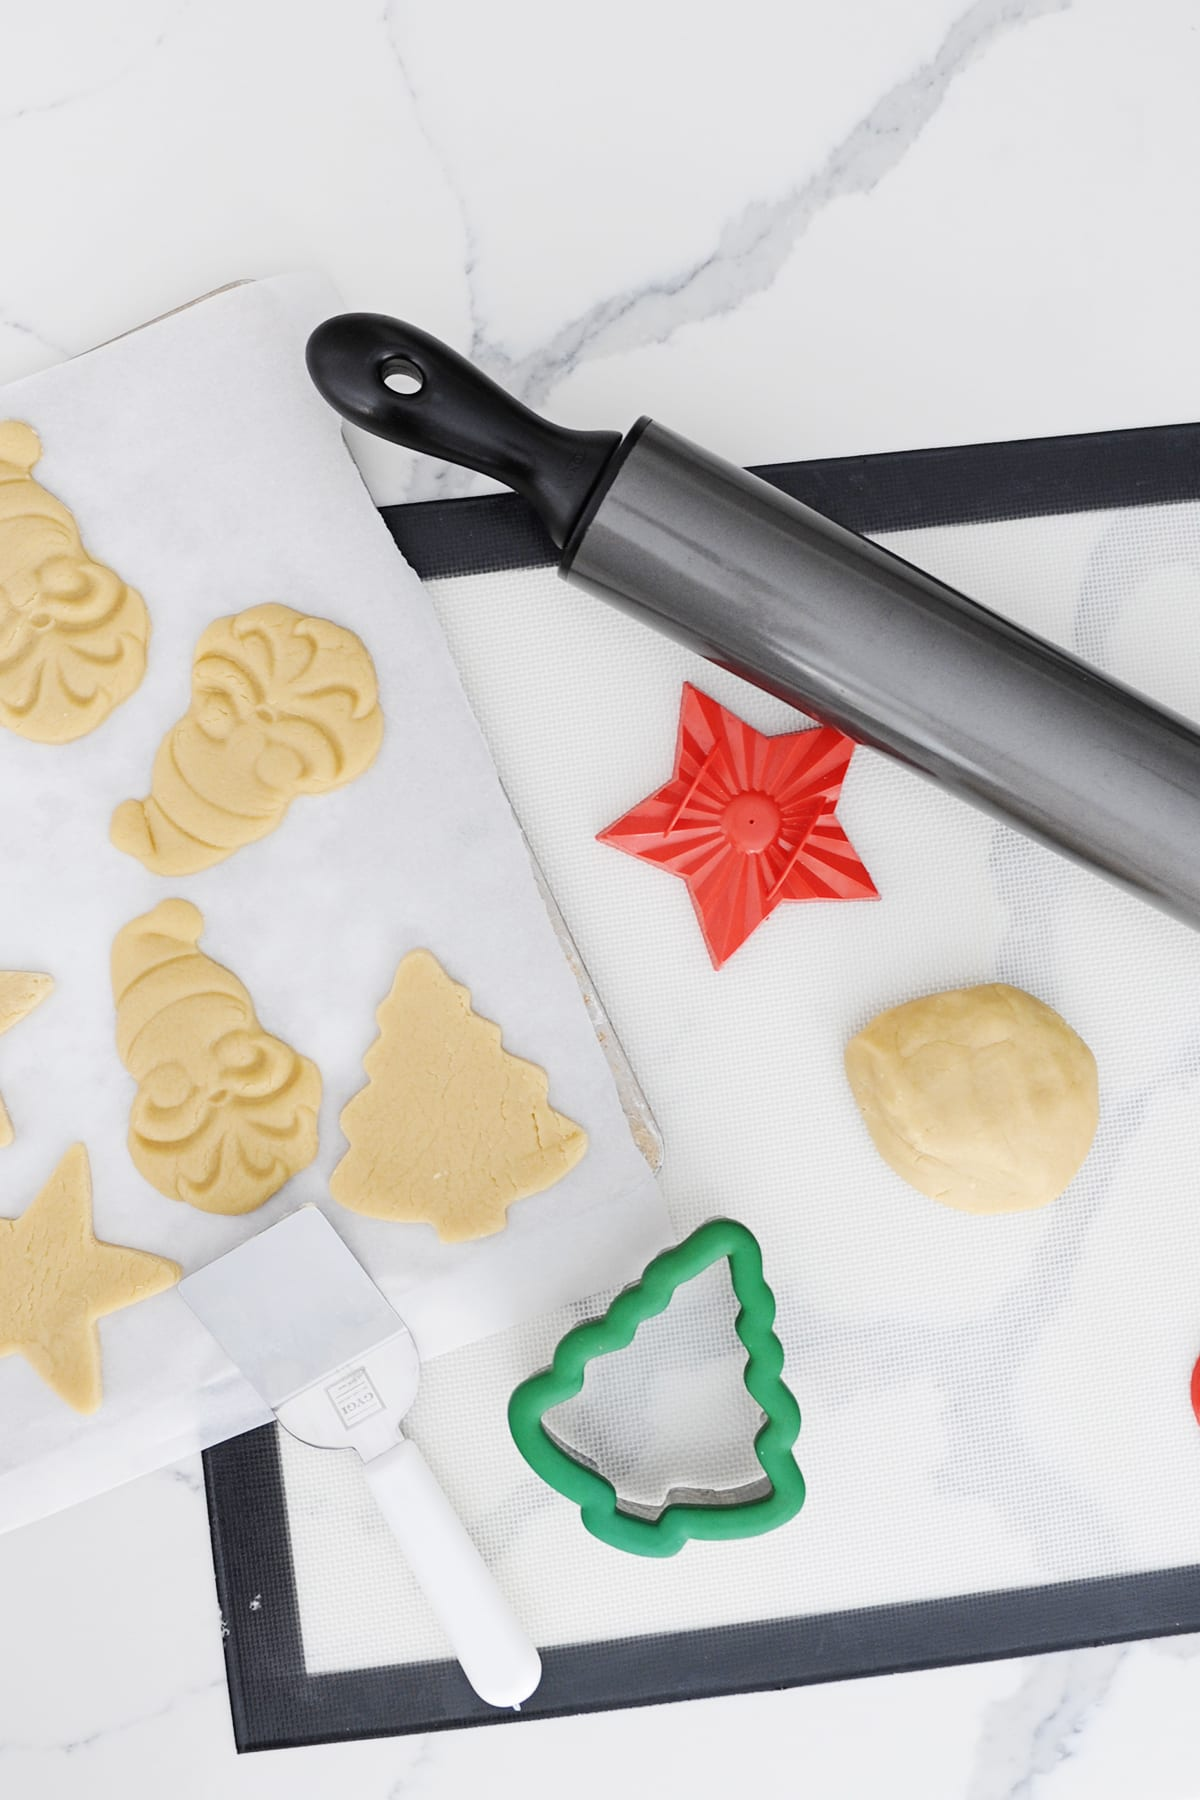 Best sugar cookie dough recipe